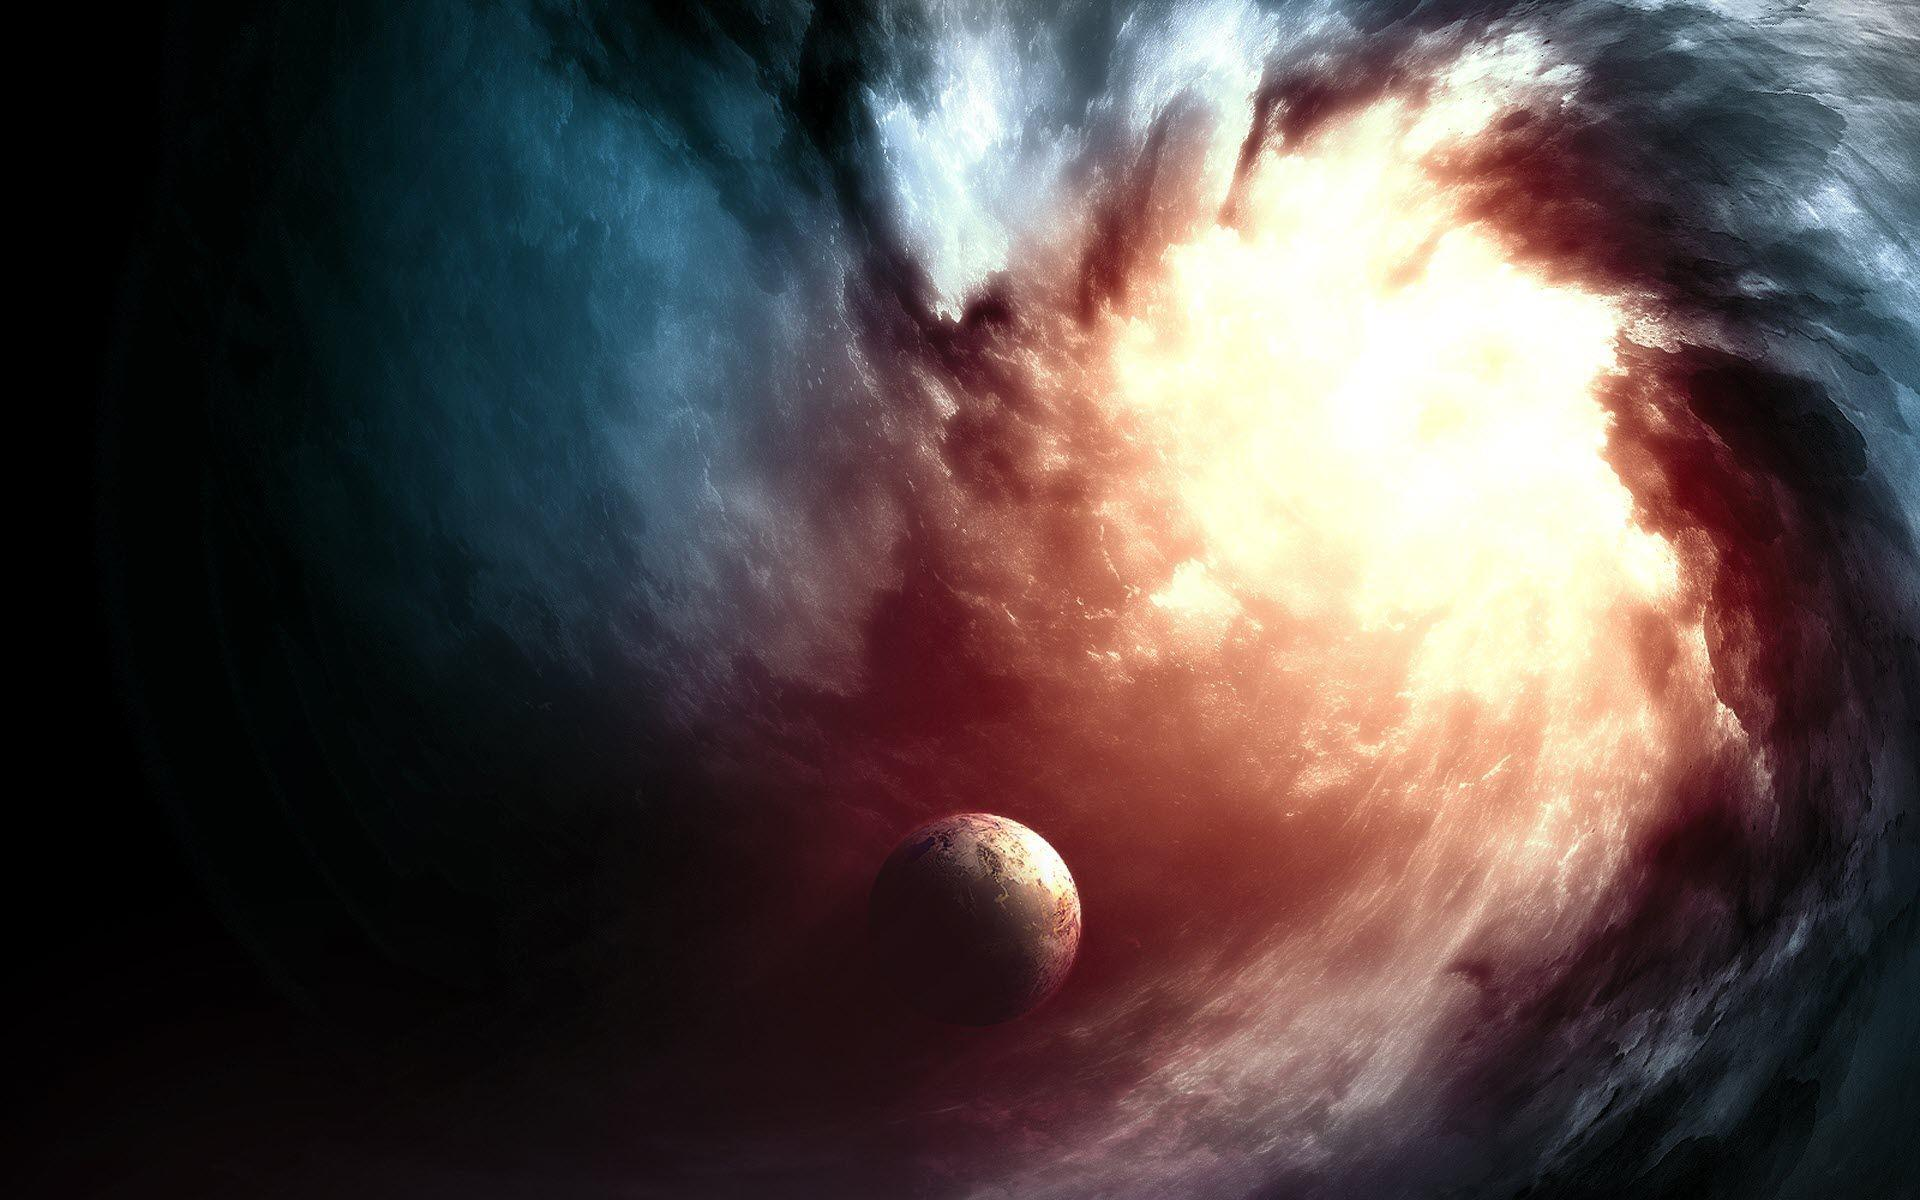 Cool Backgrounds HD Space Black Hole